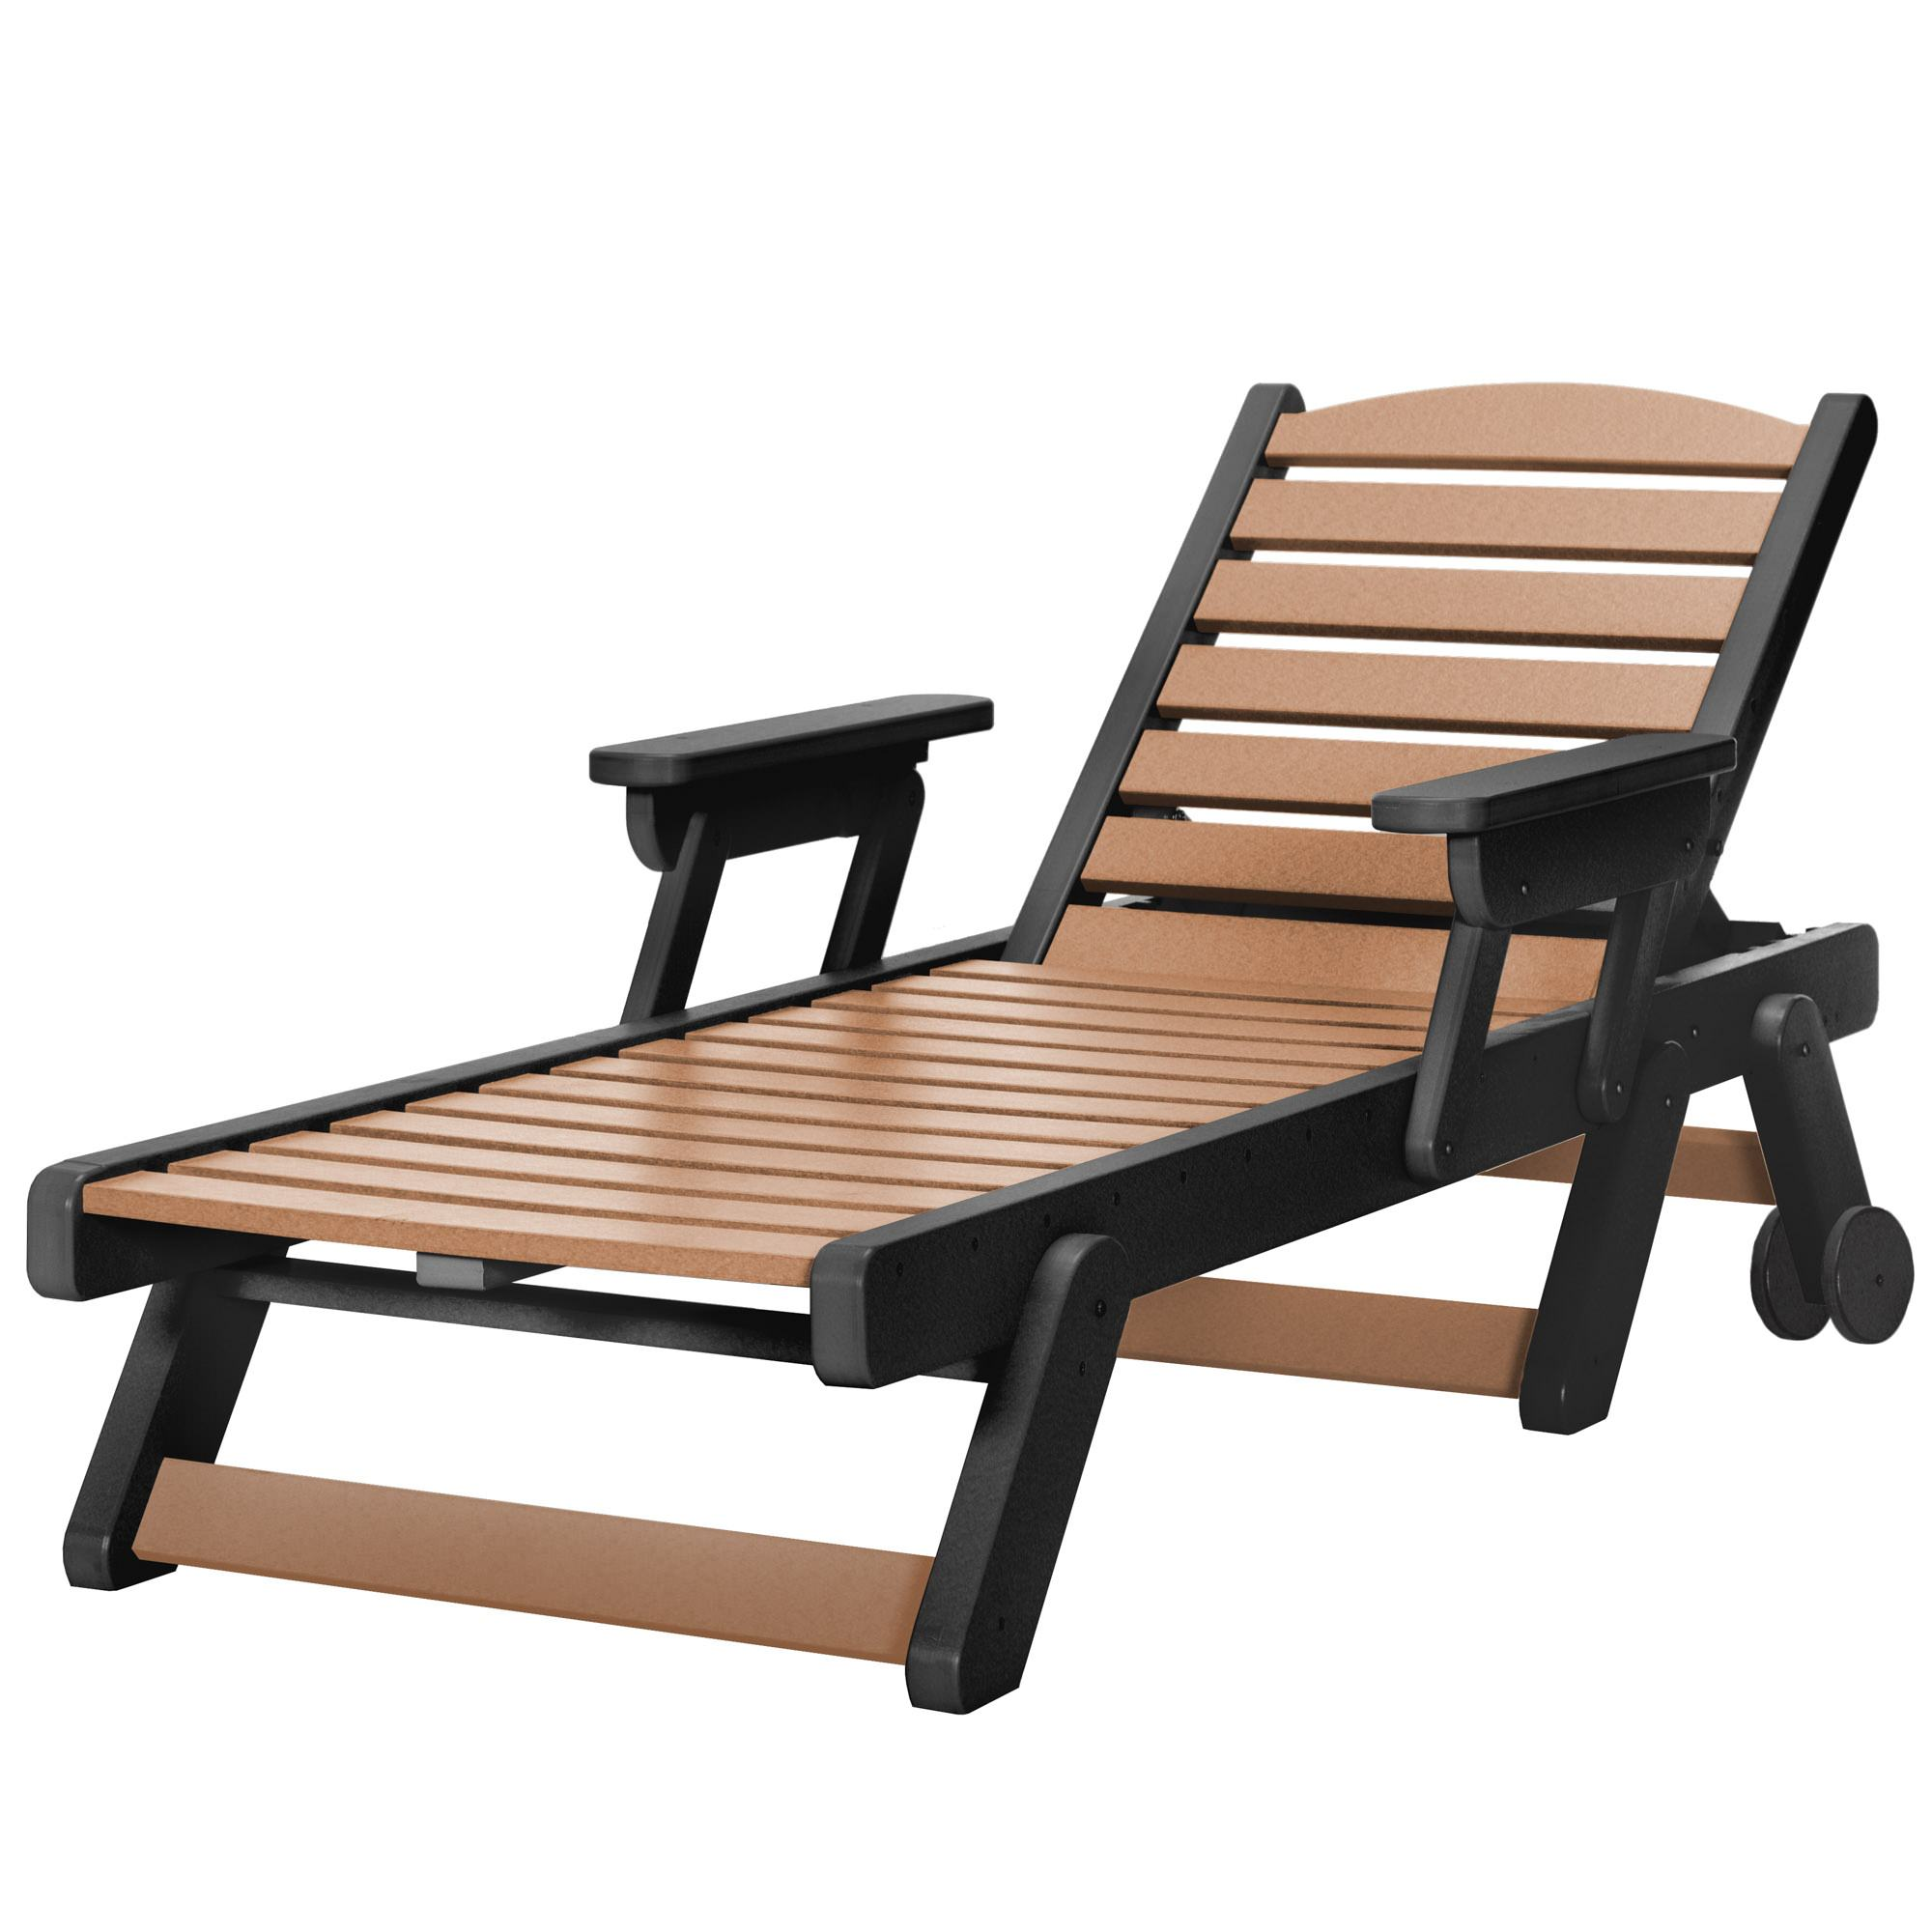 Chaise lounge pawleys island for Chaise lounge black